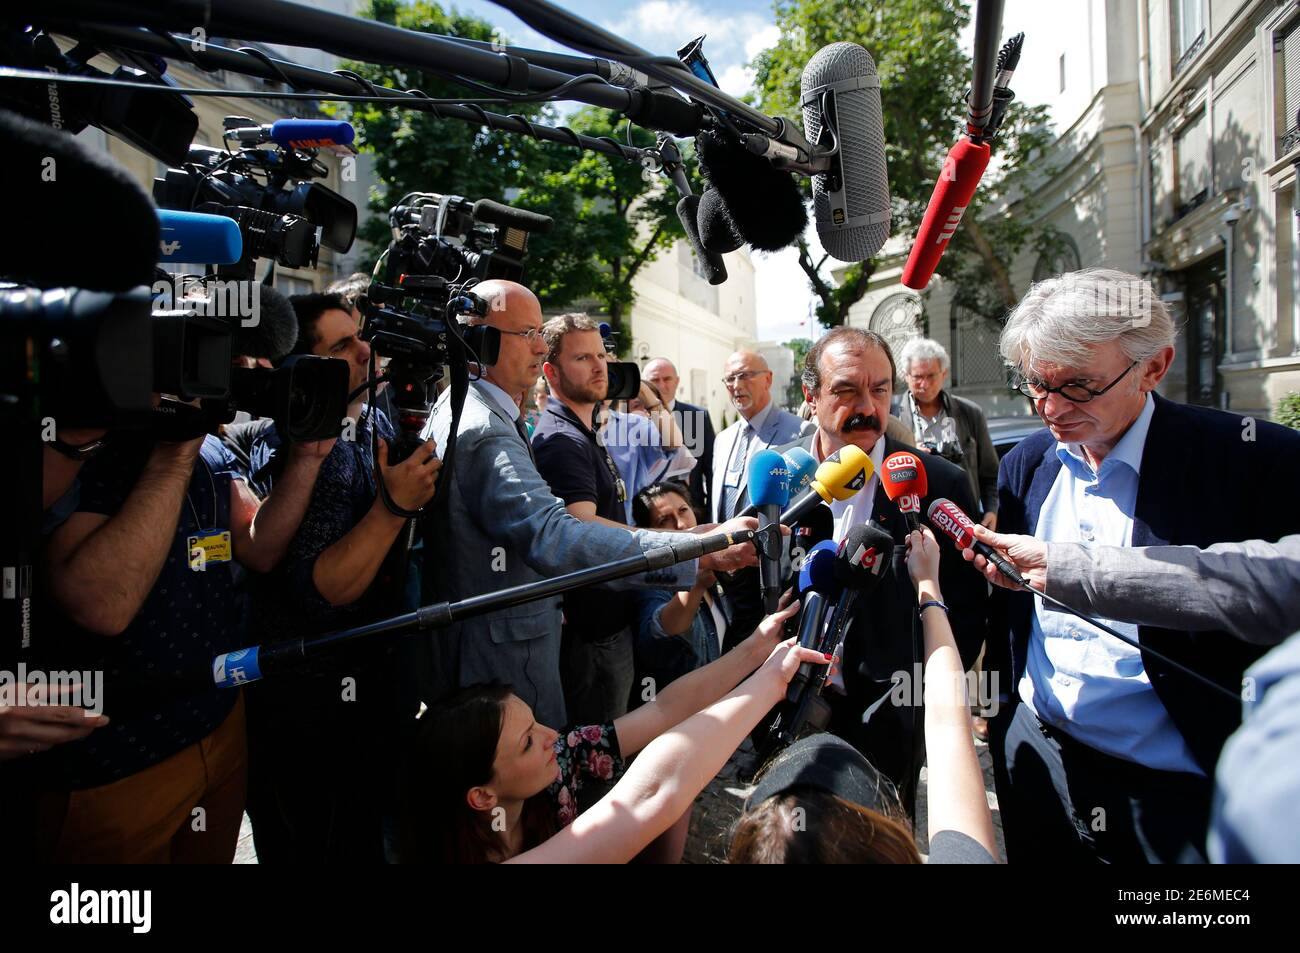 French Force Ouvriere (FO) labour union General Secretary Jean-Claude Mailly (R) and French CGT trade union head Philippe Martinez (2ndR) speak with journalist as they leave after a meeting with the Interior minister in Paris, France, June 22, 2016 after French police banned a planned demonstration this week against labour reforms, bringing to a head a stand-off between the government and trade unions which have been spearheading protests against the changes for months.  REUTERS/Stephane Mahe Foto de stock